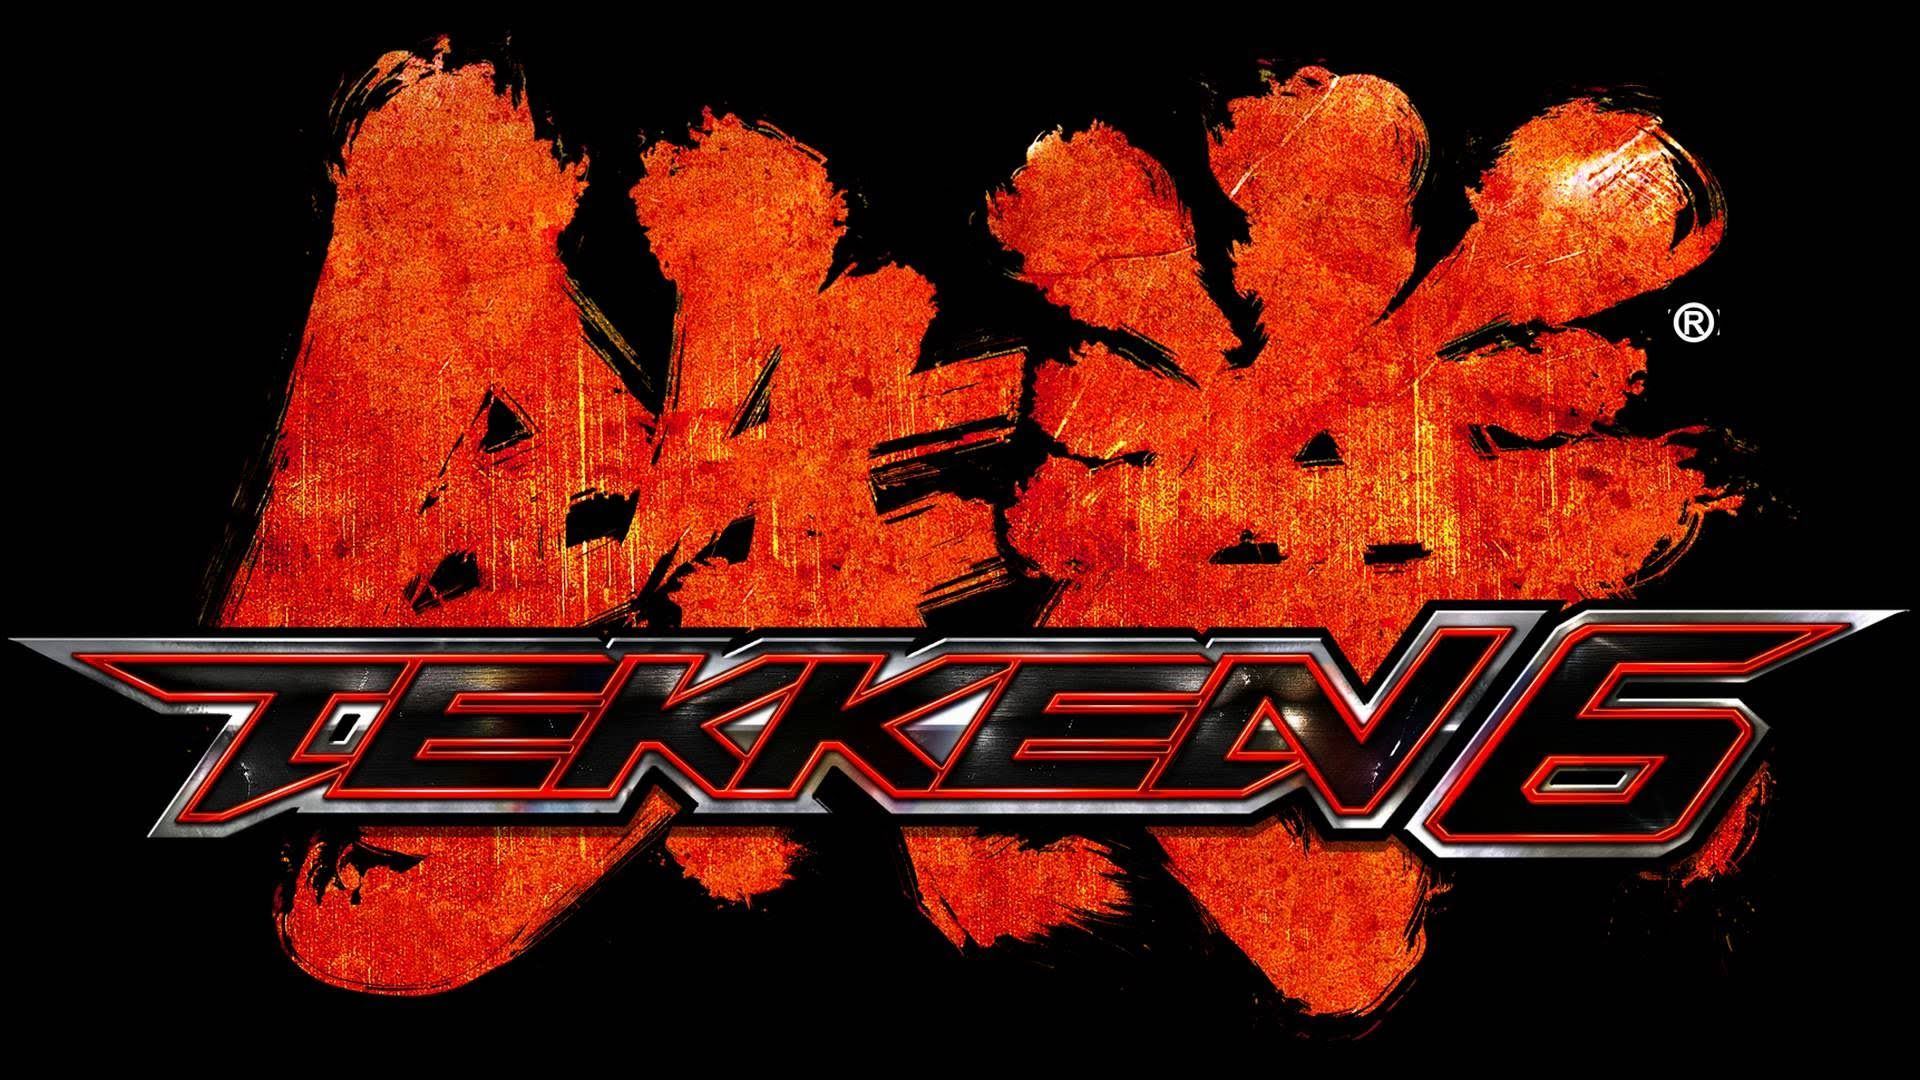 Ps3 Tekken 6 Max Money Story Mode 90 Completed Save Girls Anime Cry Anime